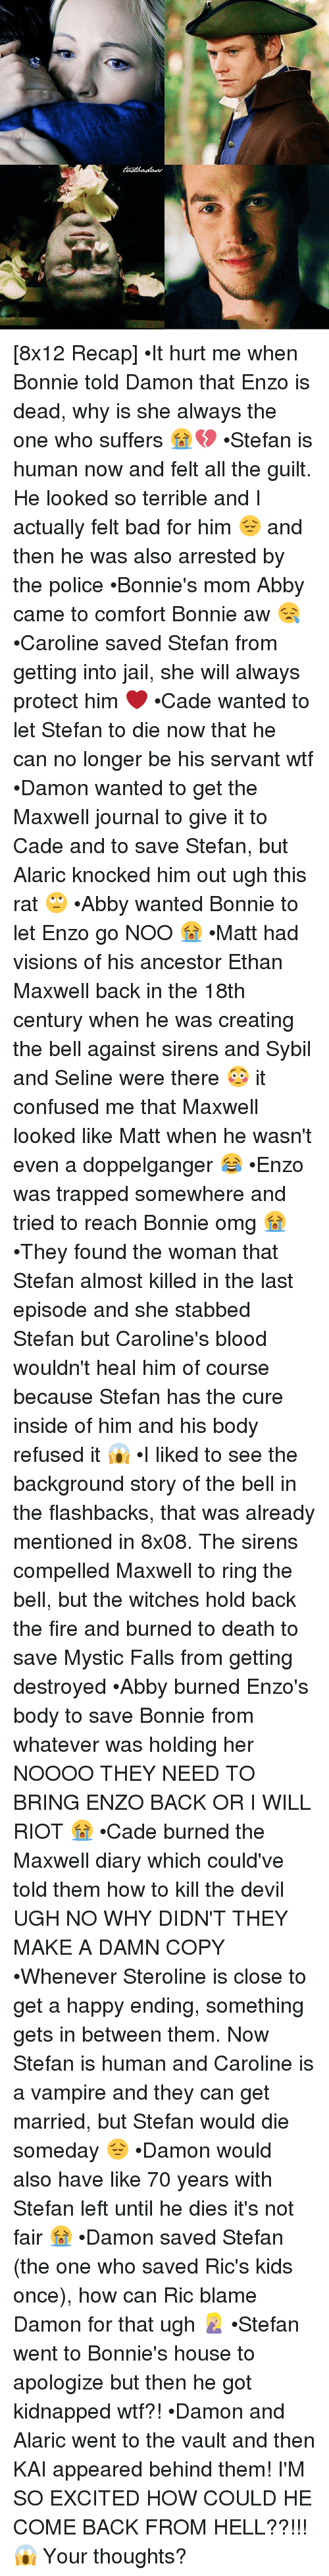 Sirening: [8x12 Recap] •It hurt me when Bonnie told Damon that Enzo is dead, why is she always the one who suffers 😭💔 •Stefan is human now and felt all the guilt. He looked so terrible and I actually felt bad for him 😔 and then he was also arrested by the police •Bonnie's mom Abby came to comfort Bonnie aw 😪 •Caroline saved Stefan from getting into jail, she will always protect him ❤ •Cade wanted to let Stefan to die now that he can no longer be his servant wtf •Damon wanted to get the Maxwell journal to give it to Cade and to save Stefan, but Alaric knocked him out ugh this rat 🙄 •Abby wanted Bonnie to let Enzo go NOO 😭 •Matt had visions of his ancestor Ethan Maxwell back in the 18th century when he was creating the bell against sirens and Sybil and Seline were there 😳 it confused me that Maxwell looked like Matt when he wasn't even a doppelganger 😂 •Enzo was trapped somewhere and tried to reach Bonnie omg 😭 •They found the woman that Stefan almost killed in the last episode and she stabbed Stefan but Caroline's blood wouldn't heal him of course because Stefan has the cure inside of him and his body refused it 😱 •I liked to see the background story of the bell in the flashbacks, that was already mentioned in 8x08. The sirens compelled Maxwell to ring the bell, but the witches hold back the fire and burned to death to save Mystic Falls from getting destroyed •Abby burned Enzo's body to save Bonnie from whatever was holding her NOOOO THEY NEED TO BRING ENZO BACK OR I WILL RIOT 😭 •Cade burned the Maxwell diary which could've told them how to kill the devil UGH NO WHY DIDN'T THEY MAKE A DAMN COPY •Whenever Steroline is close to get a happy ending, something gets in between them. Now Stefan is human and Caroline is a vampire and they can get married, but Stefan would die someday 😔 •Damon would also have like 70 years with Stefan left until he dies it's not fair 😭 •Damon saved Stefan (the one who saved Ric's kids once), how can Ric blame Damon for that ugh 🤦🏼♀️ •Stefan w